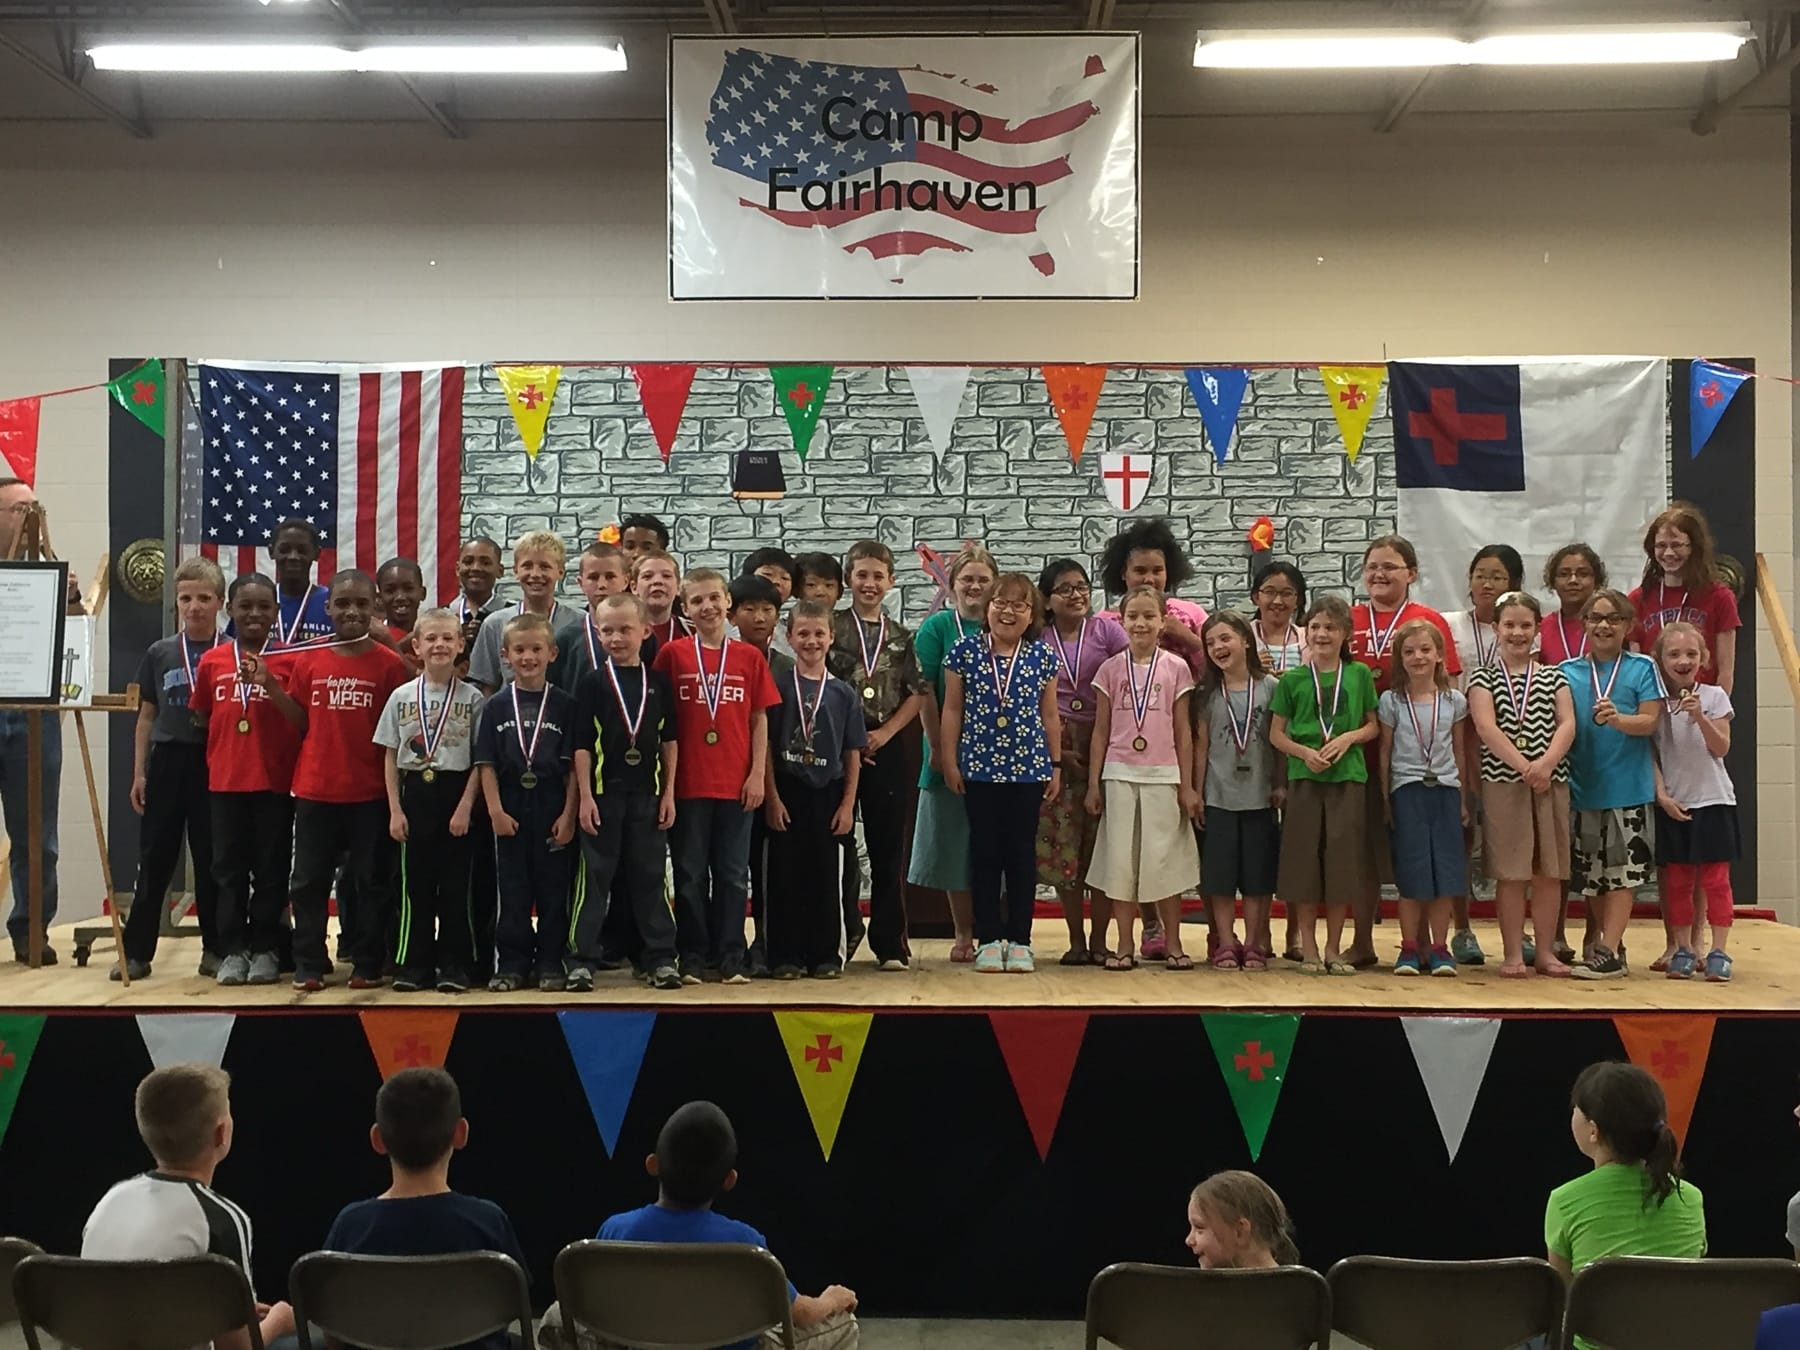 Camp Fairhaven 2016 (2 of 38)